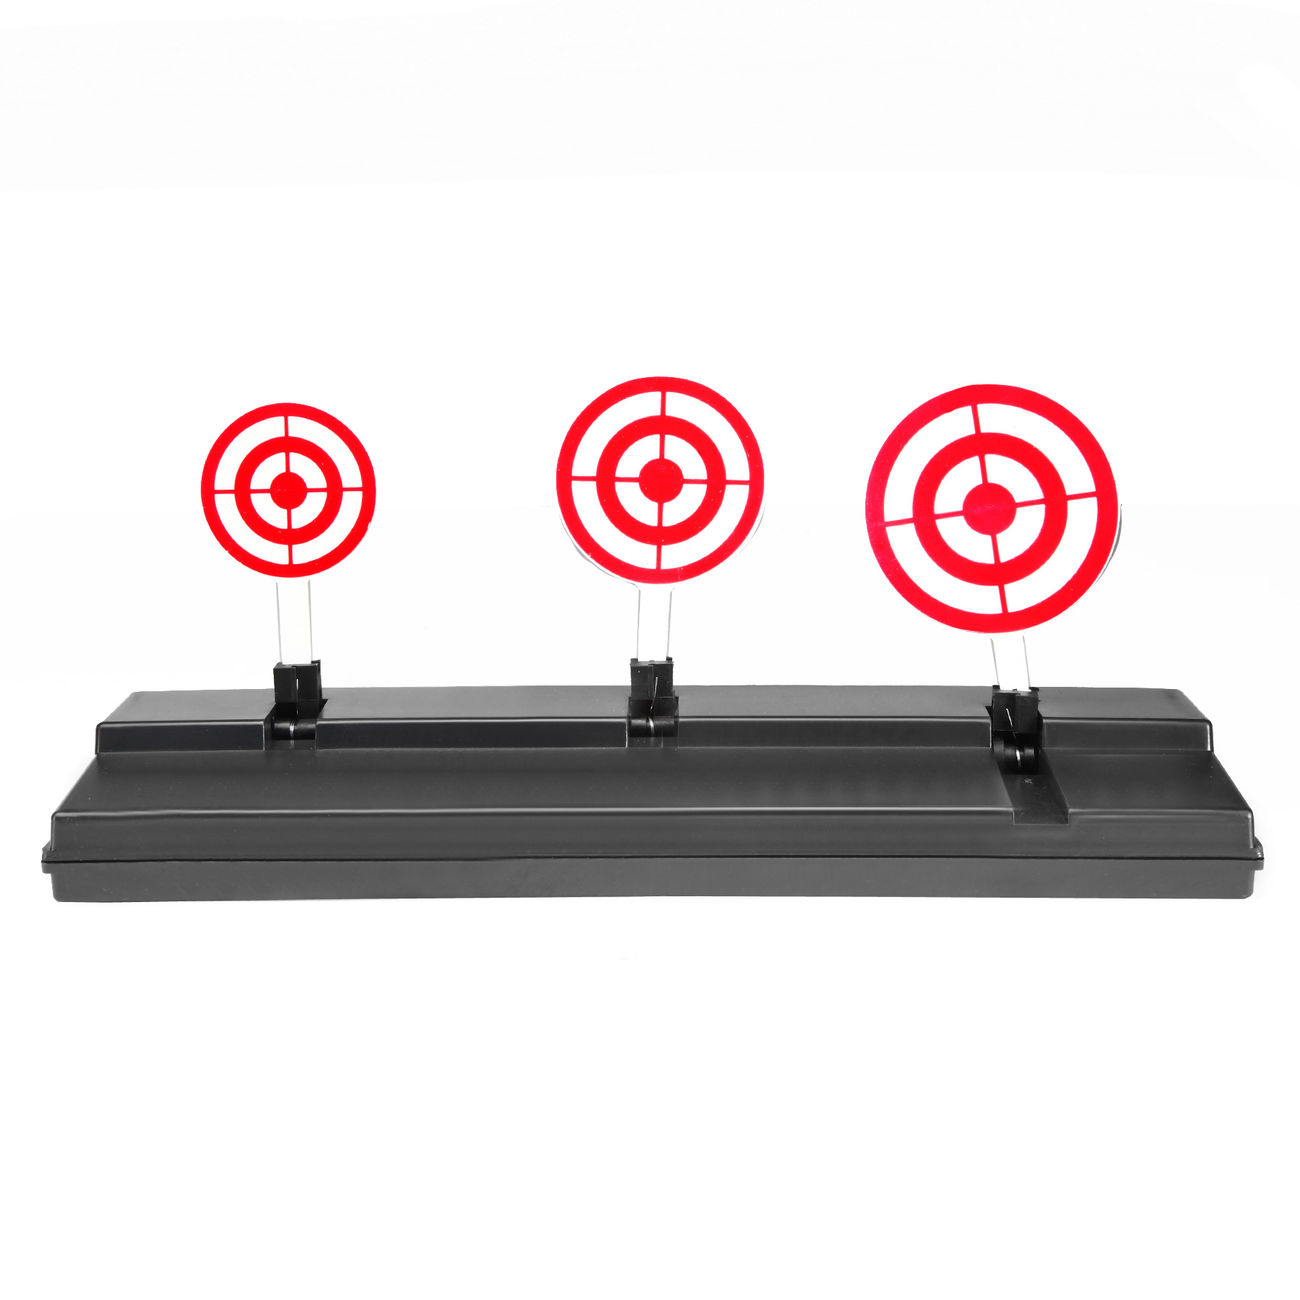 Wellfire Shooting Target Kugelfang 2in1 für Softair 5